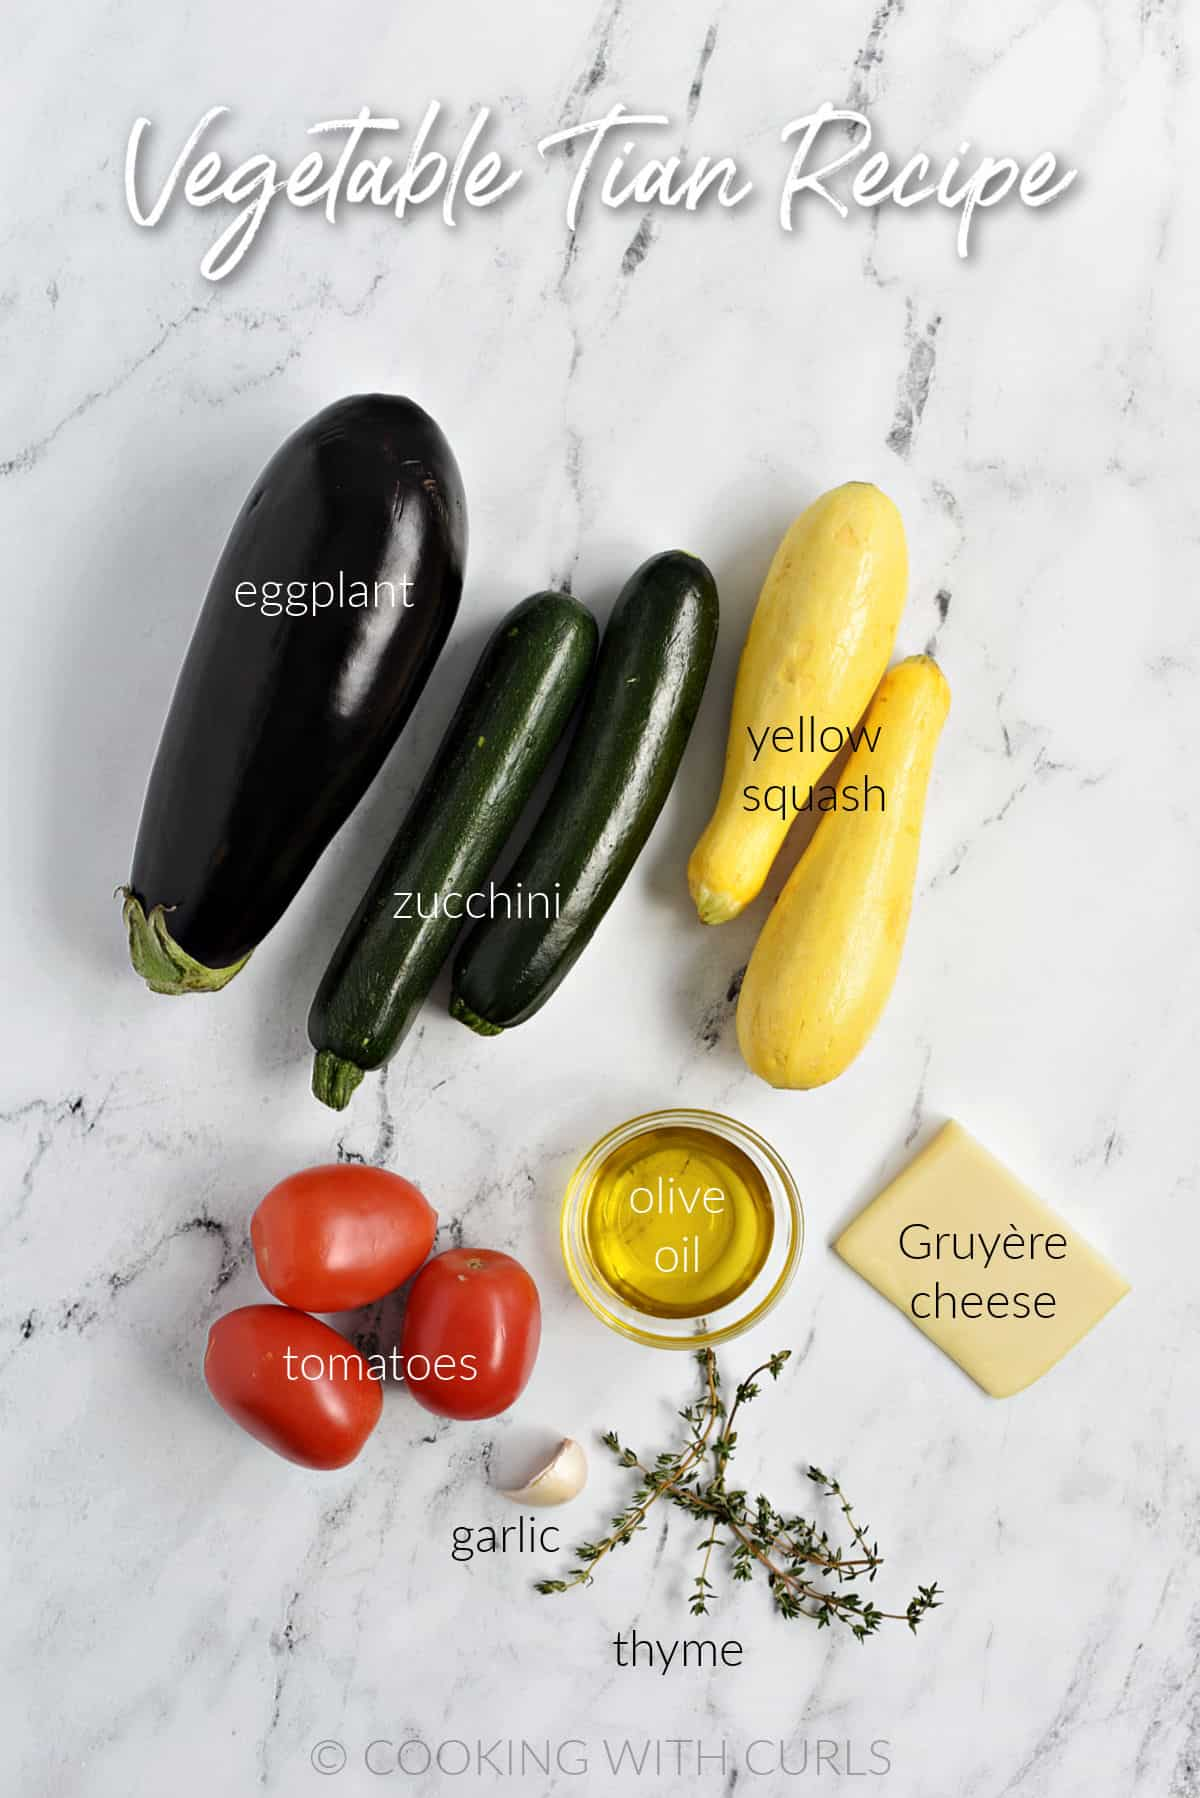 Eggplant, zucchini and yellow squash, three tomatoes, thyme, garlic, olive oil and cheese for a Vegetable Tian Recipe.